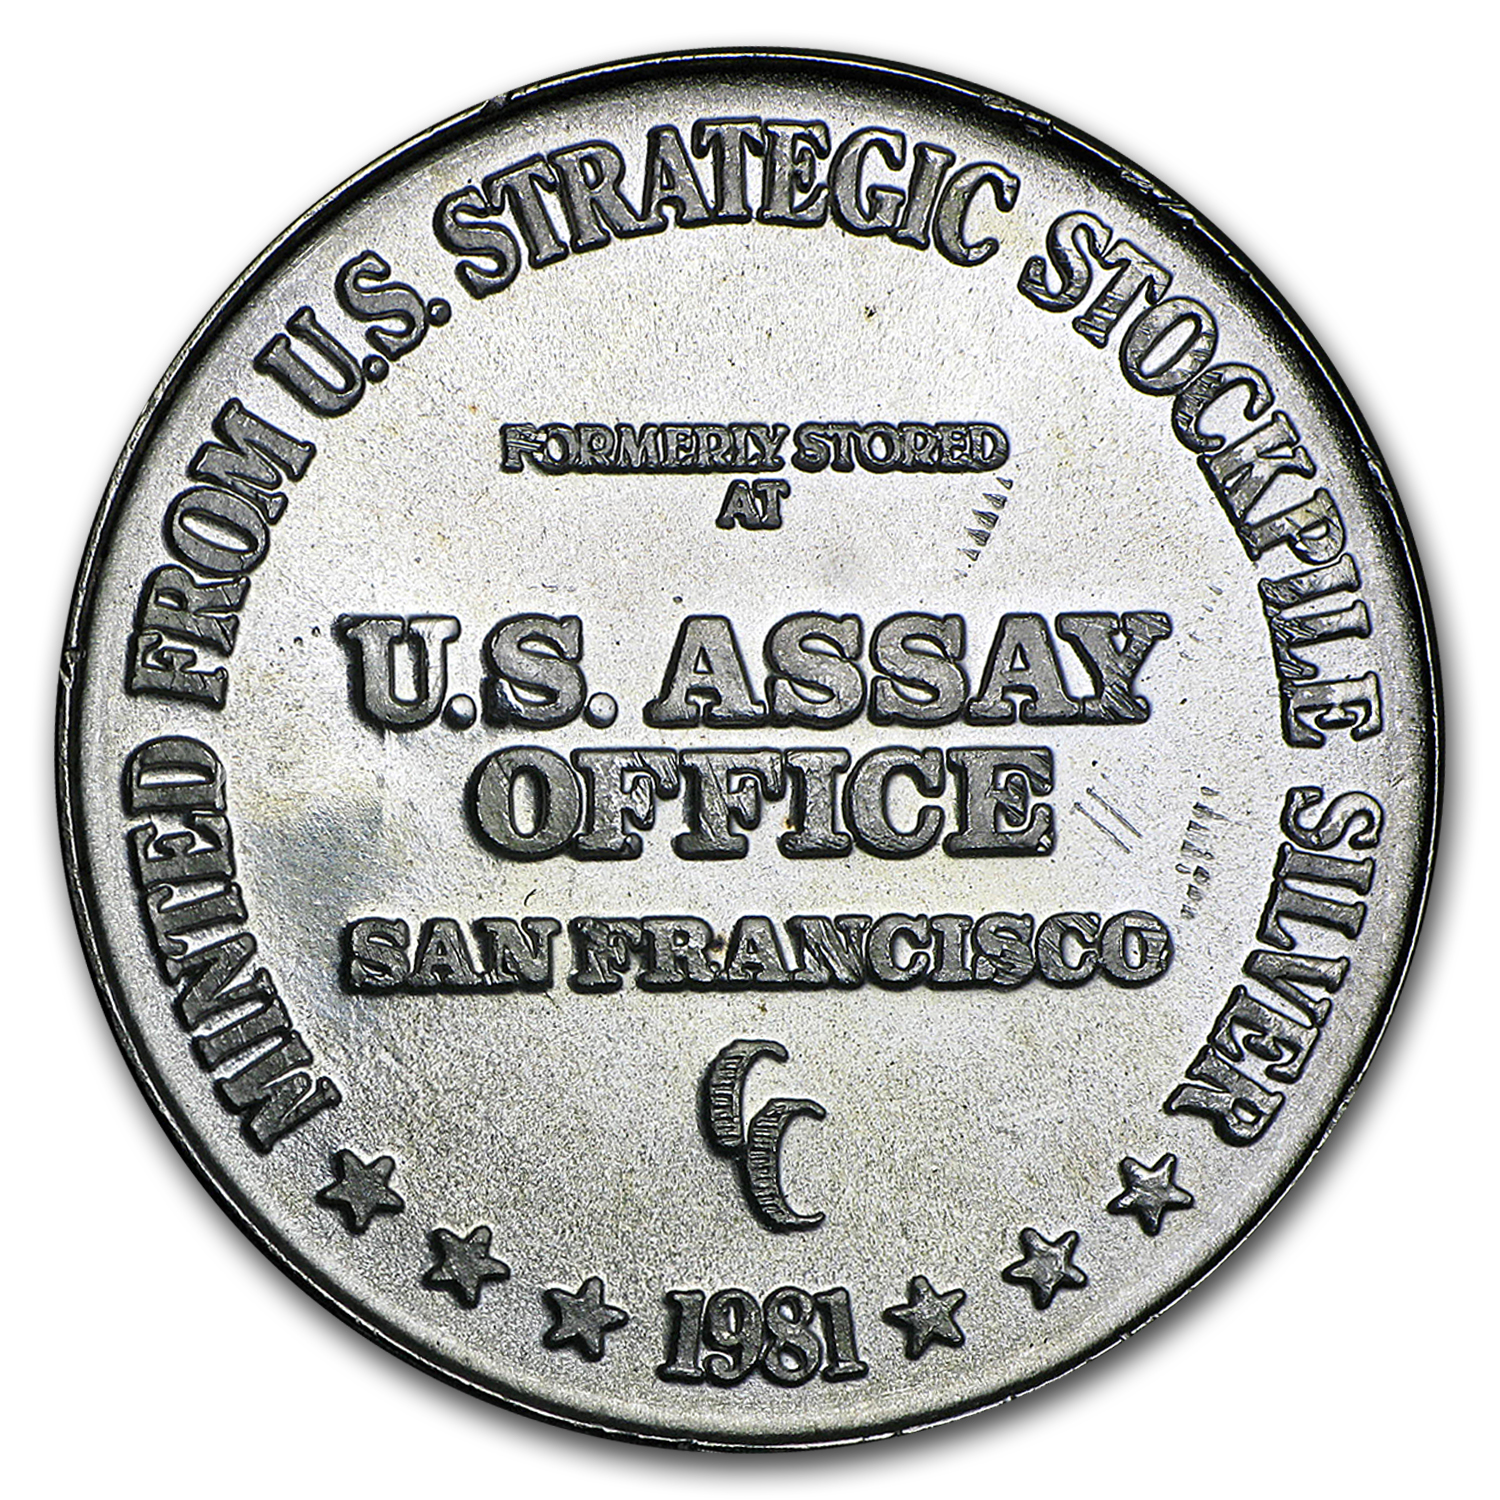 1 oz Silver Rounds - U.S. Assay Office